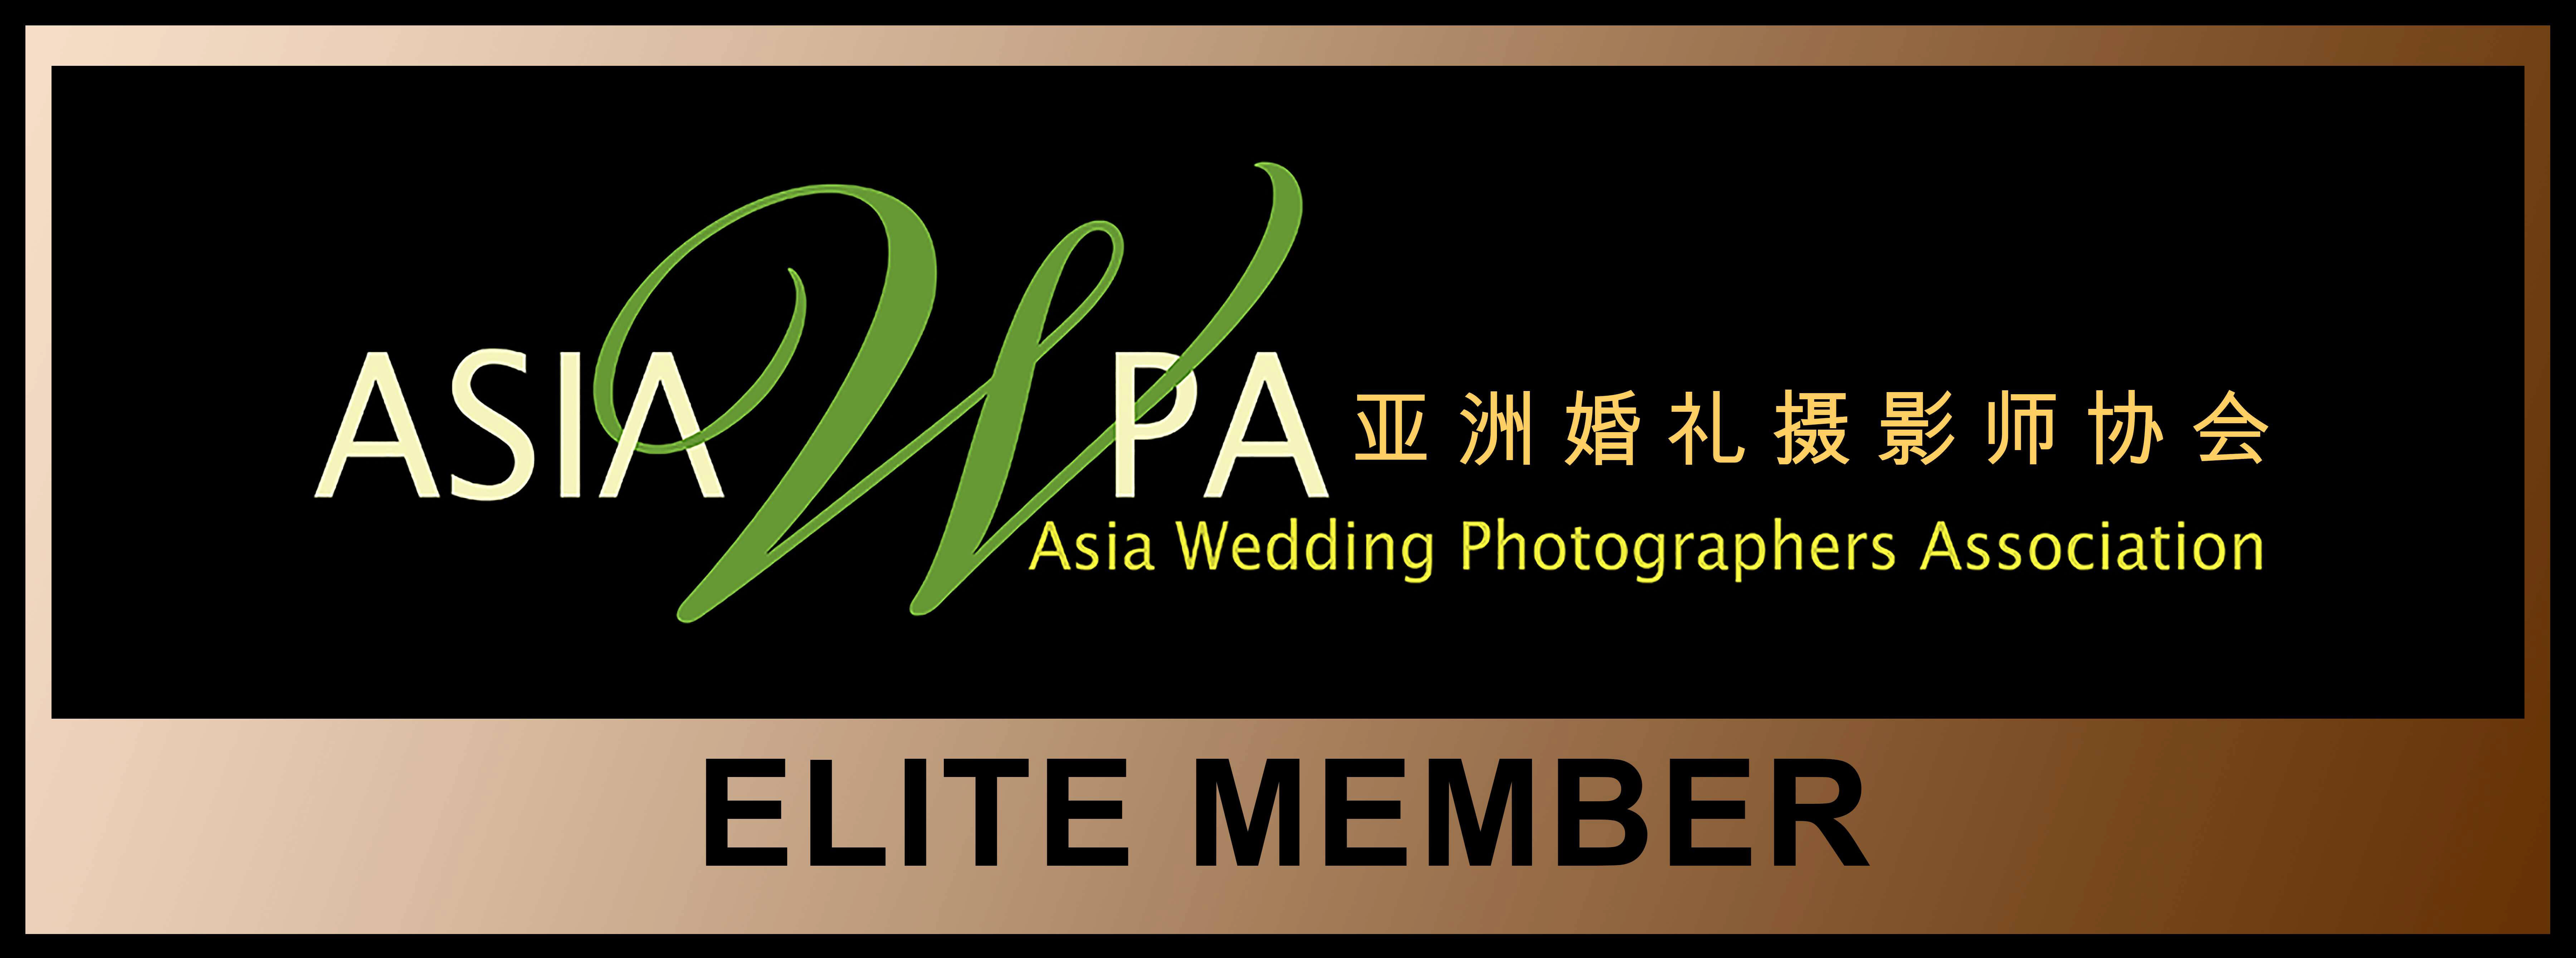 Asia-WPA―――Asia-Wedding Photographers Association